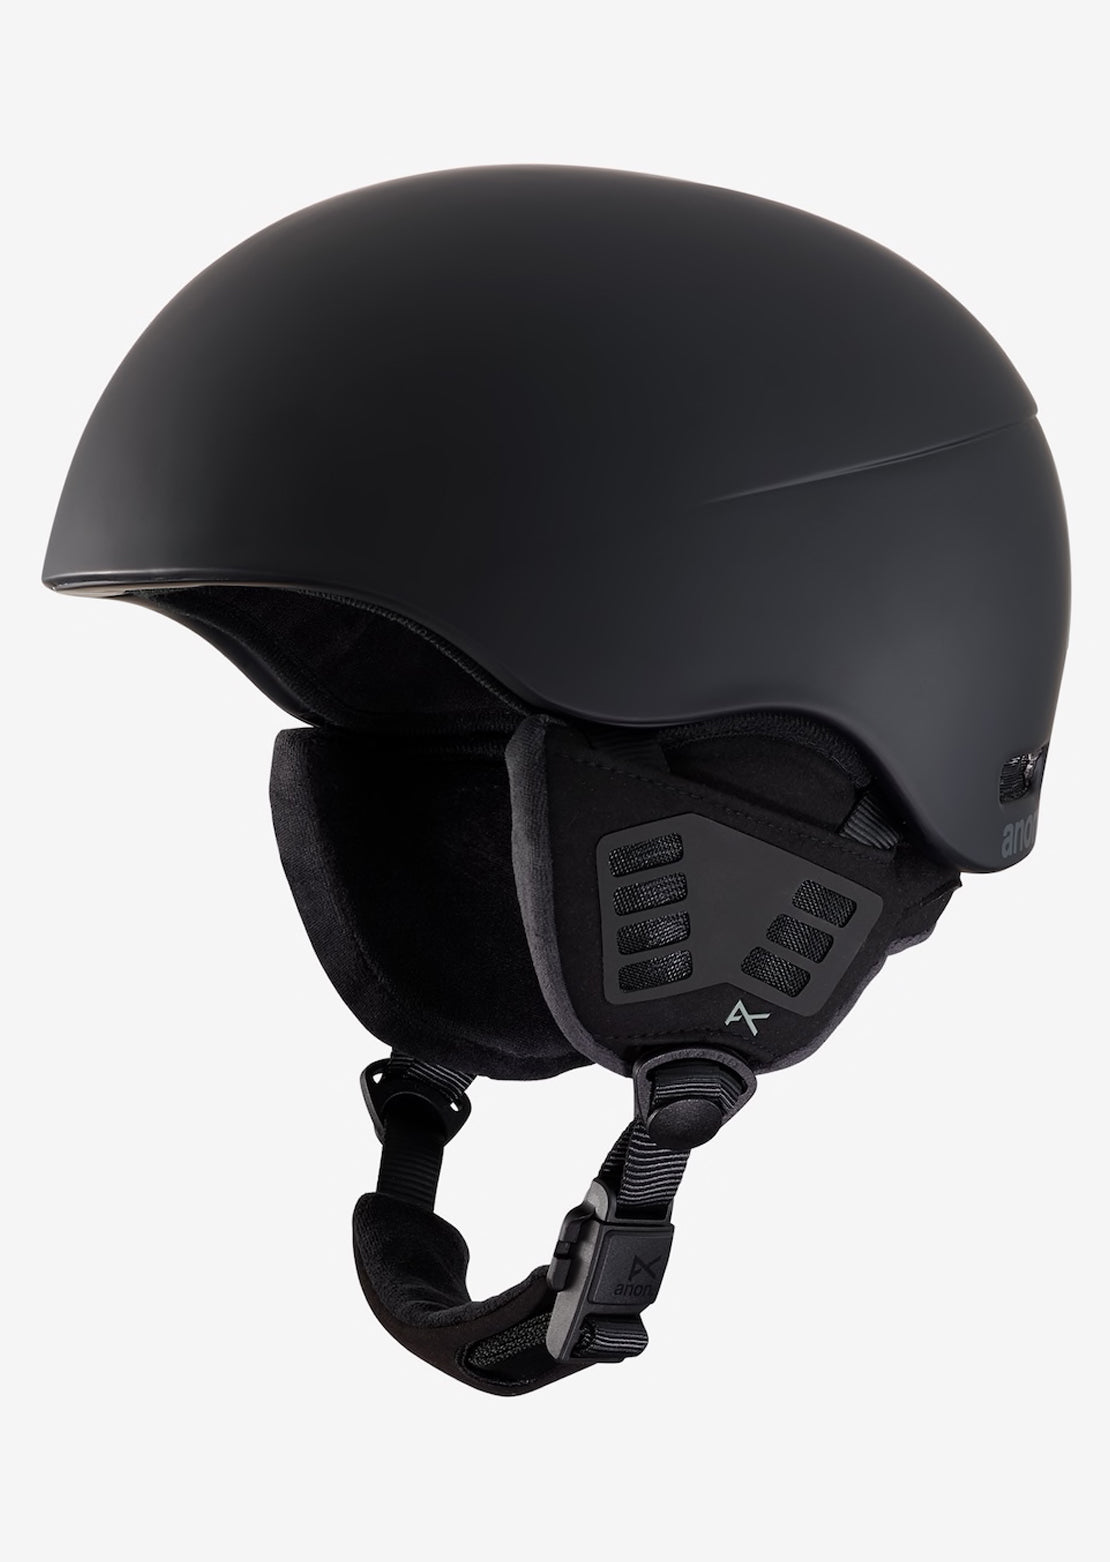 Anon Men's Helo 2.0 Helmet Black